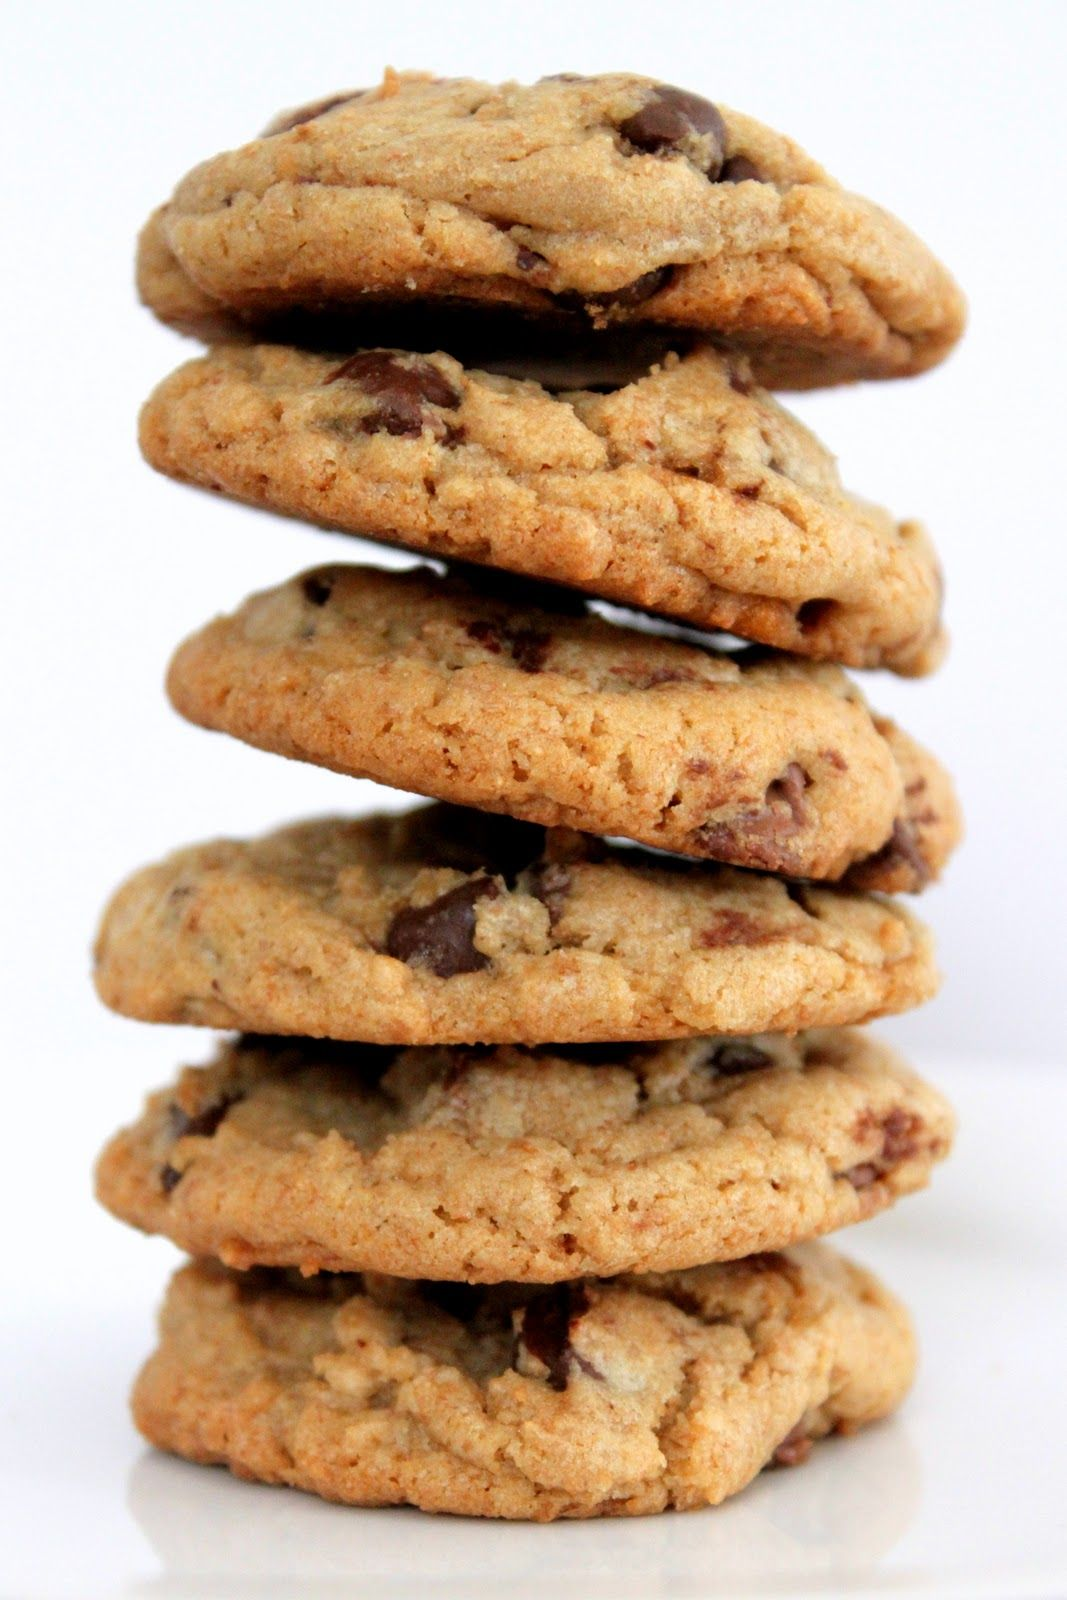 Jacques Torres' Chocolate Chip Cookies... I wonder how these compare to Thomas Keller's?